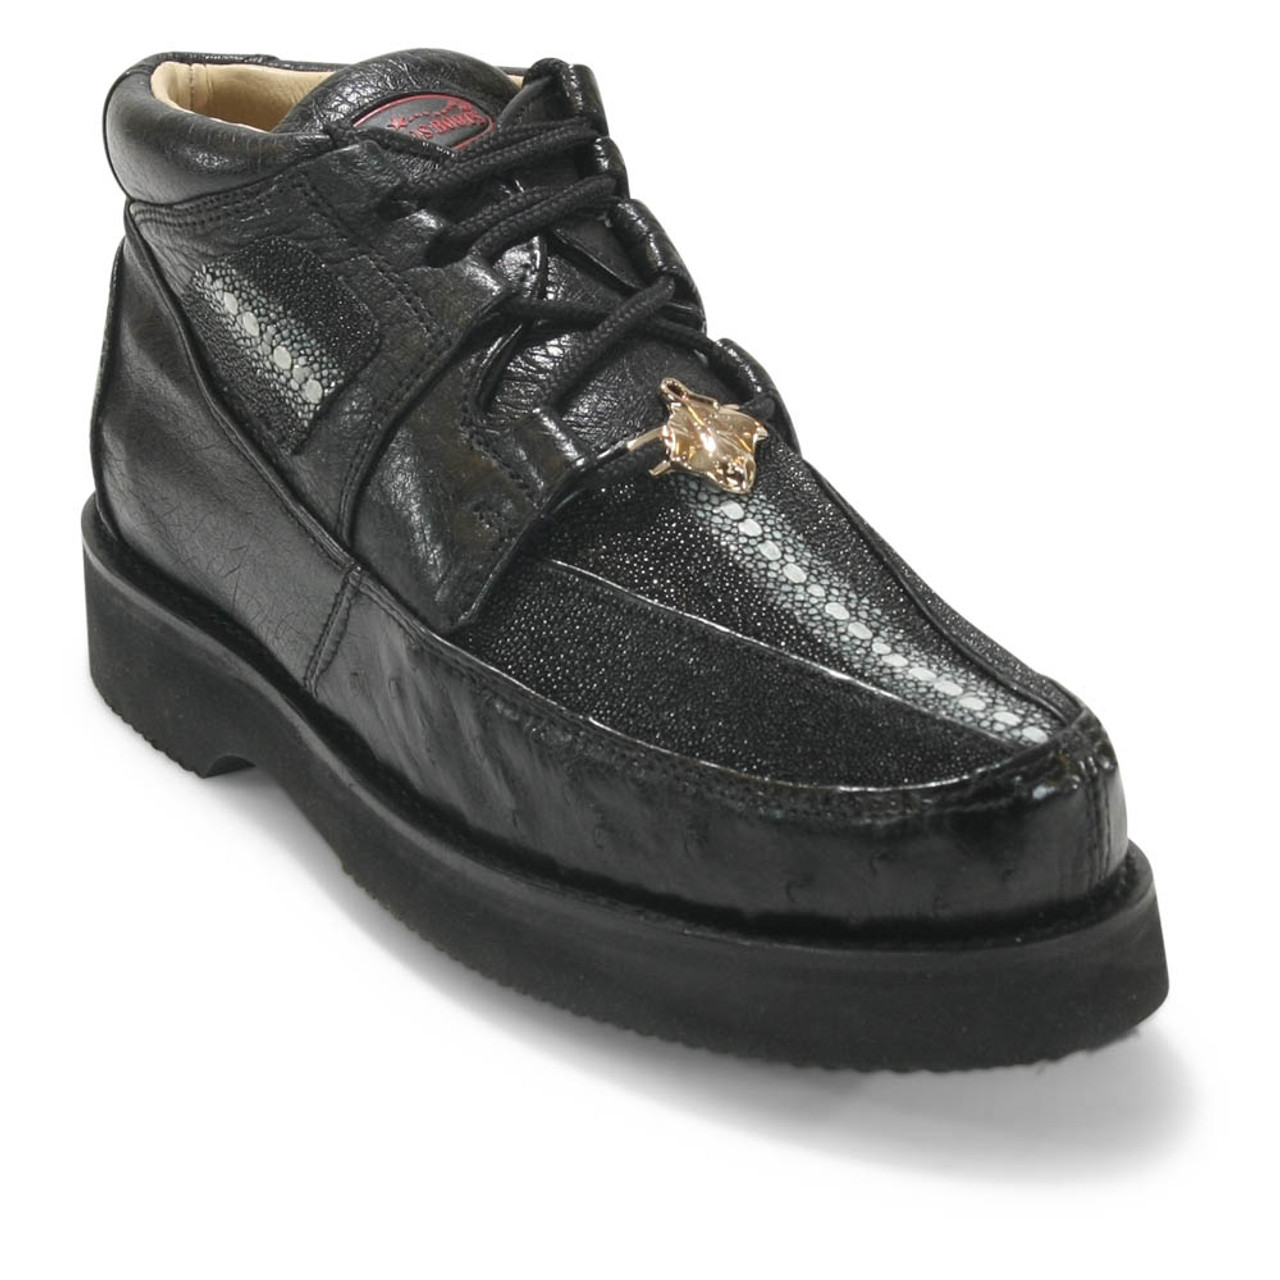 Los Altos Genuine WINTER BLACK Stingray With Ostrich Casual Shoes Lace Up D